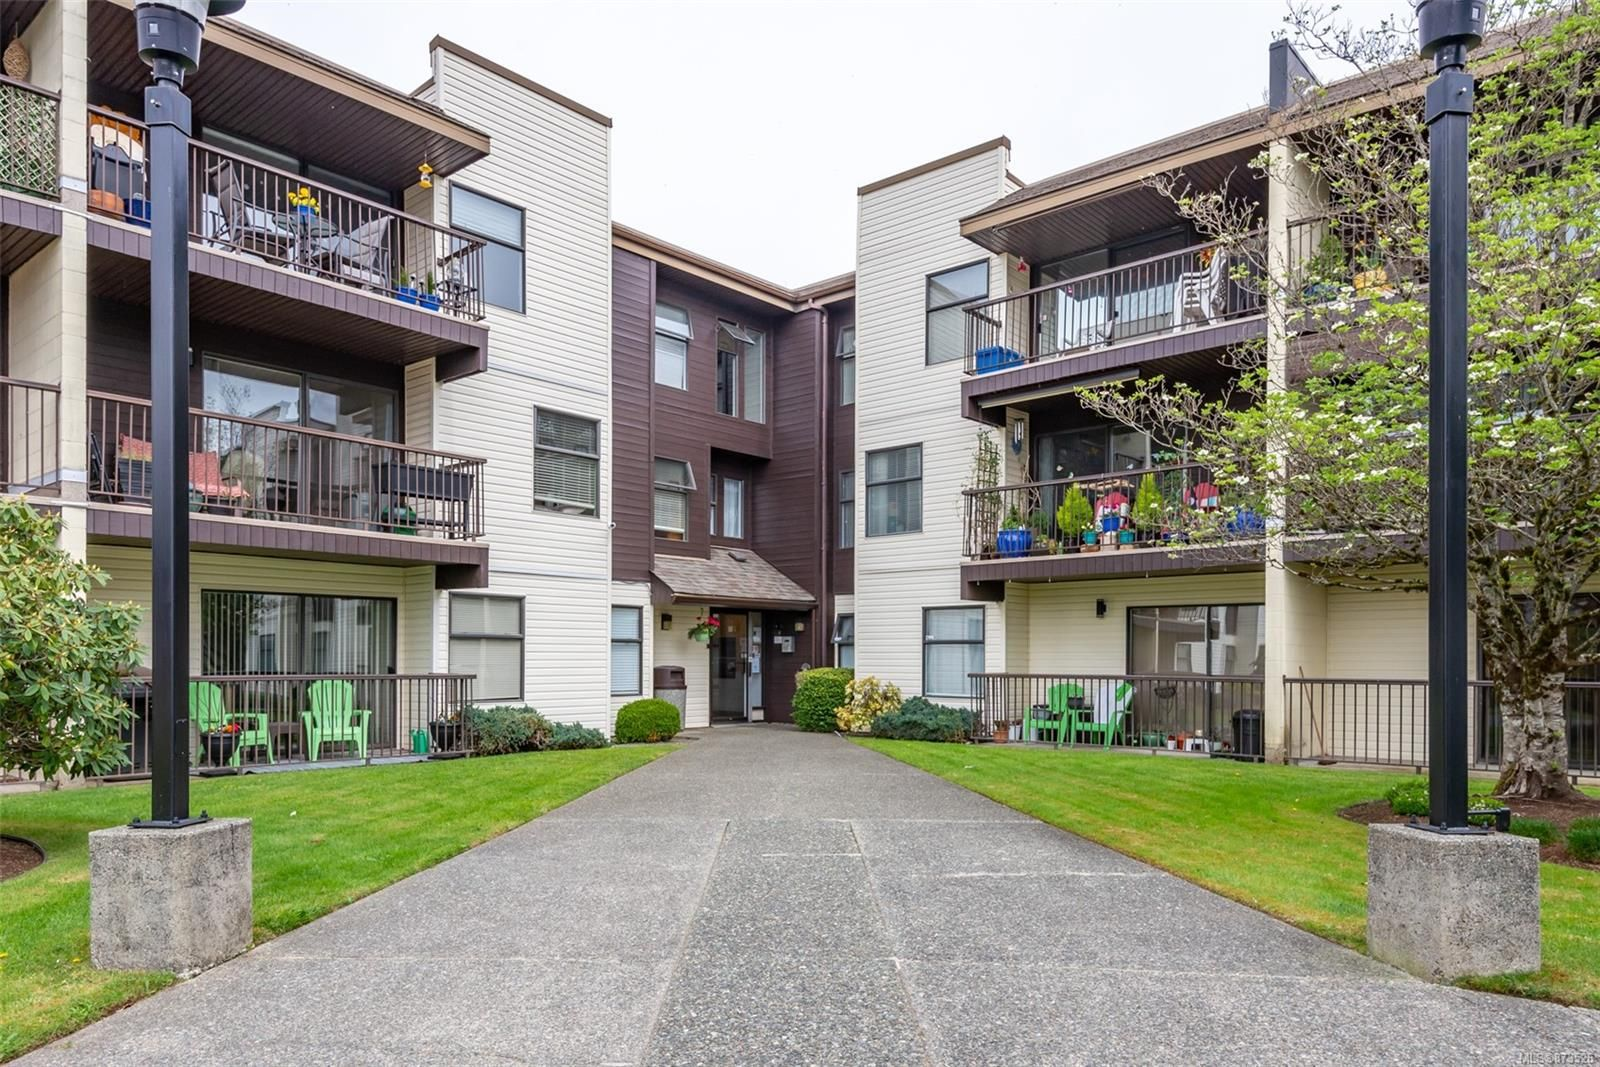 Main Photo: 304 585 S Dogwood St in : CR Campbell River Central Condo for sale (Campbell River)  : MLS®# 873526